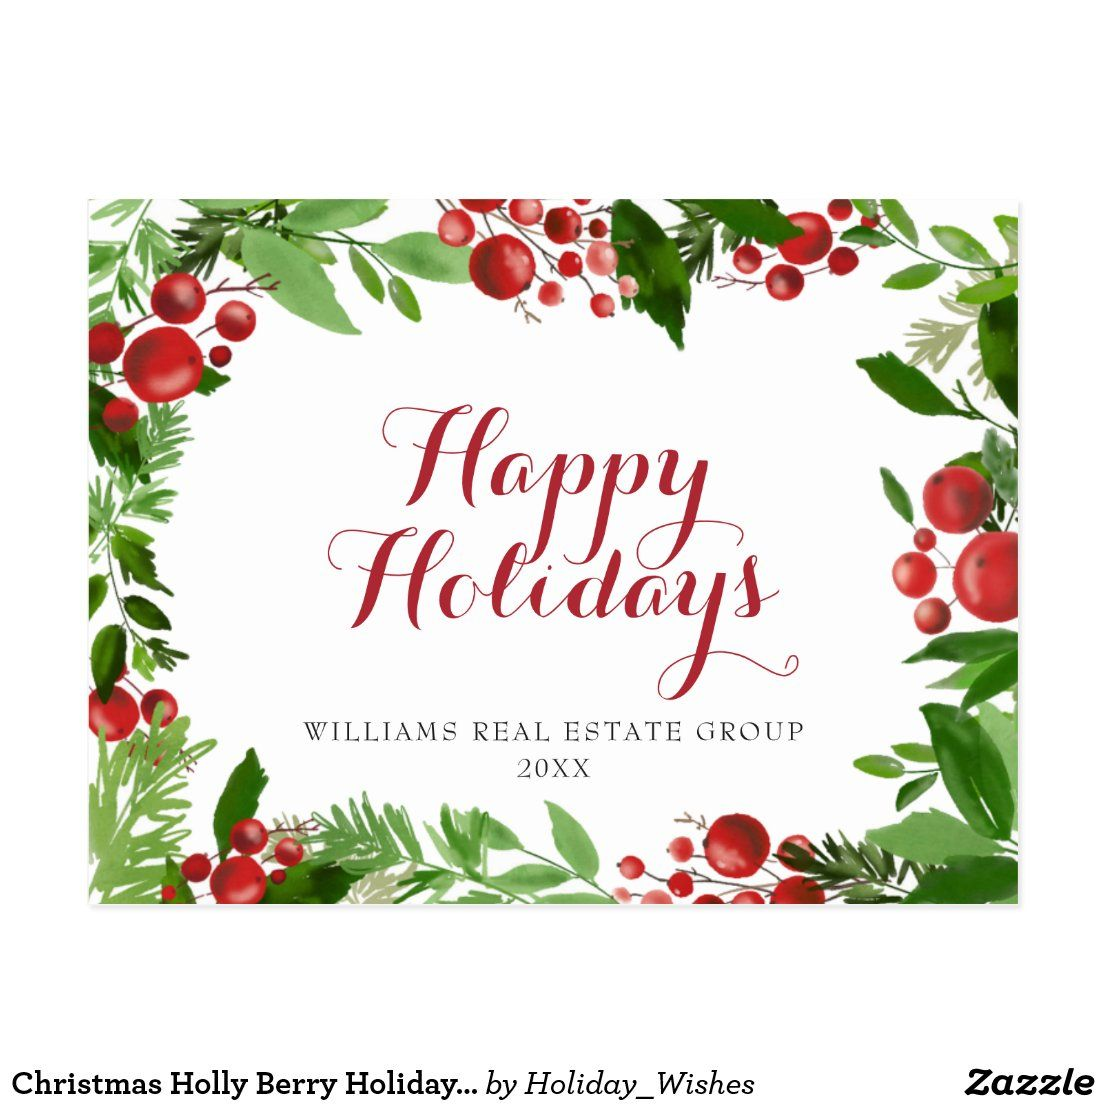 Christmas Holly Berry Holiday Corporate Greeting Postcard #zazzle #zazzlemade #christmas #newyear #customparty #partysupplies #custominvitation #invitations #holidaycards #customdecor #holidays #printondemand #customstationery #invitationtemplate #partyinvitation #partydecor #partydecorations #customgifts